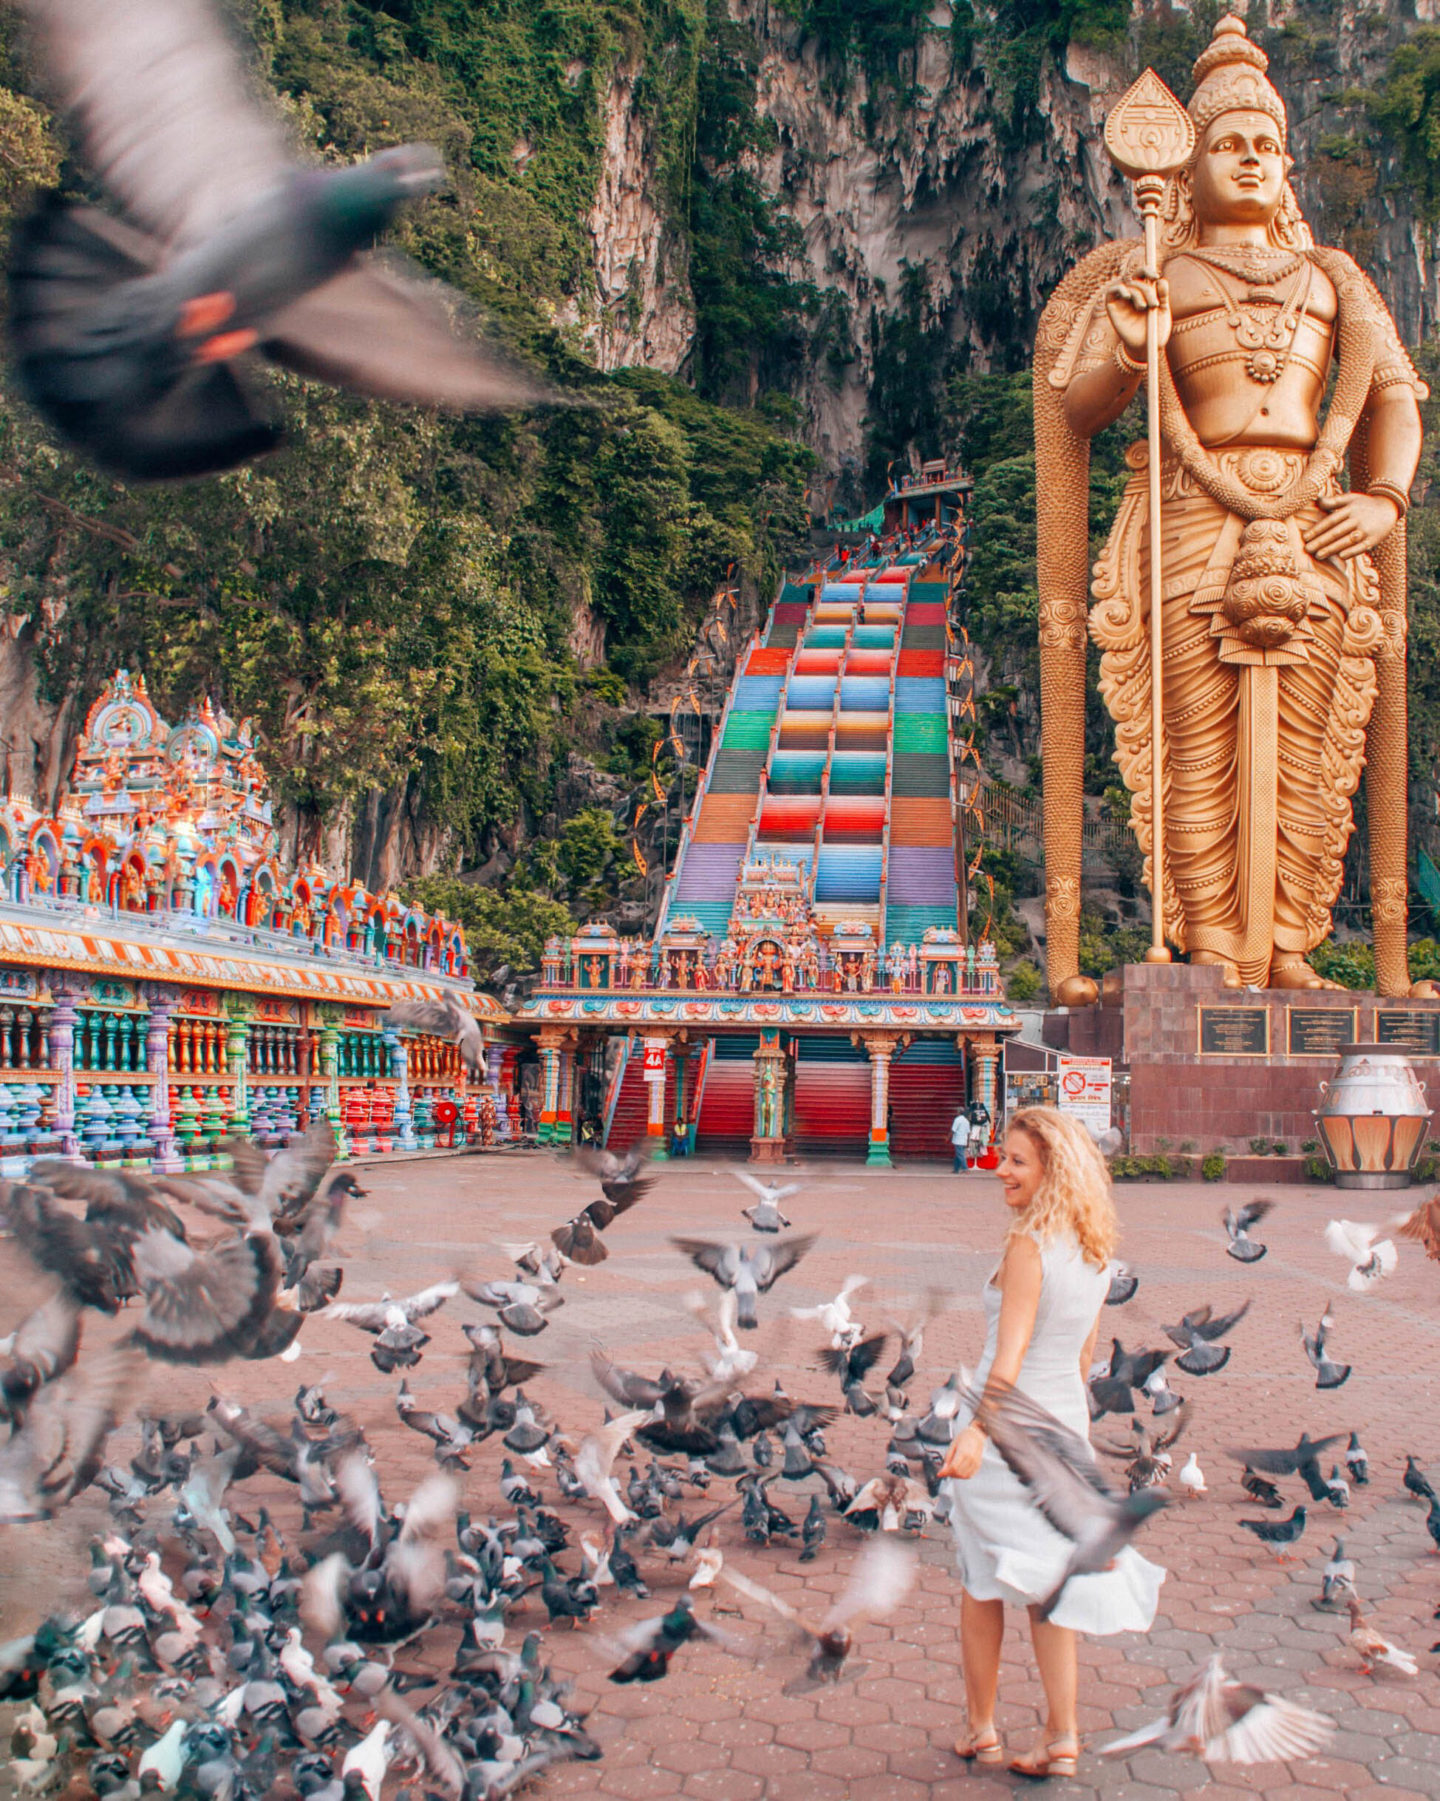 Instagram picture with the birds in Batu Caves